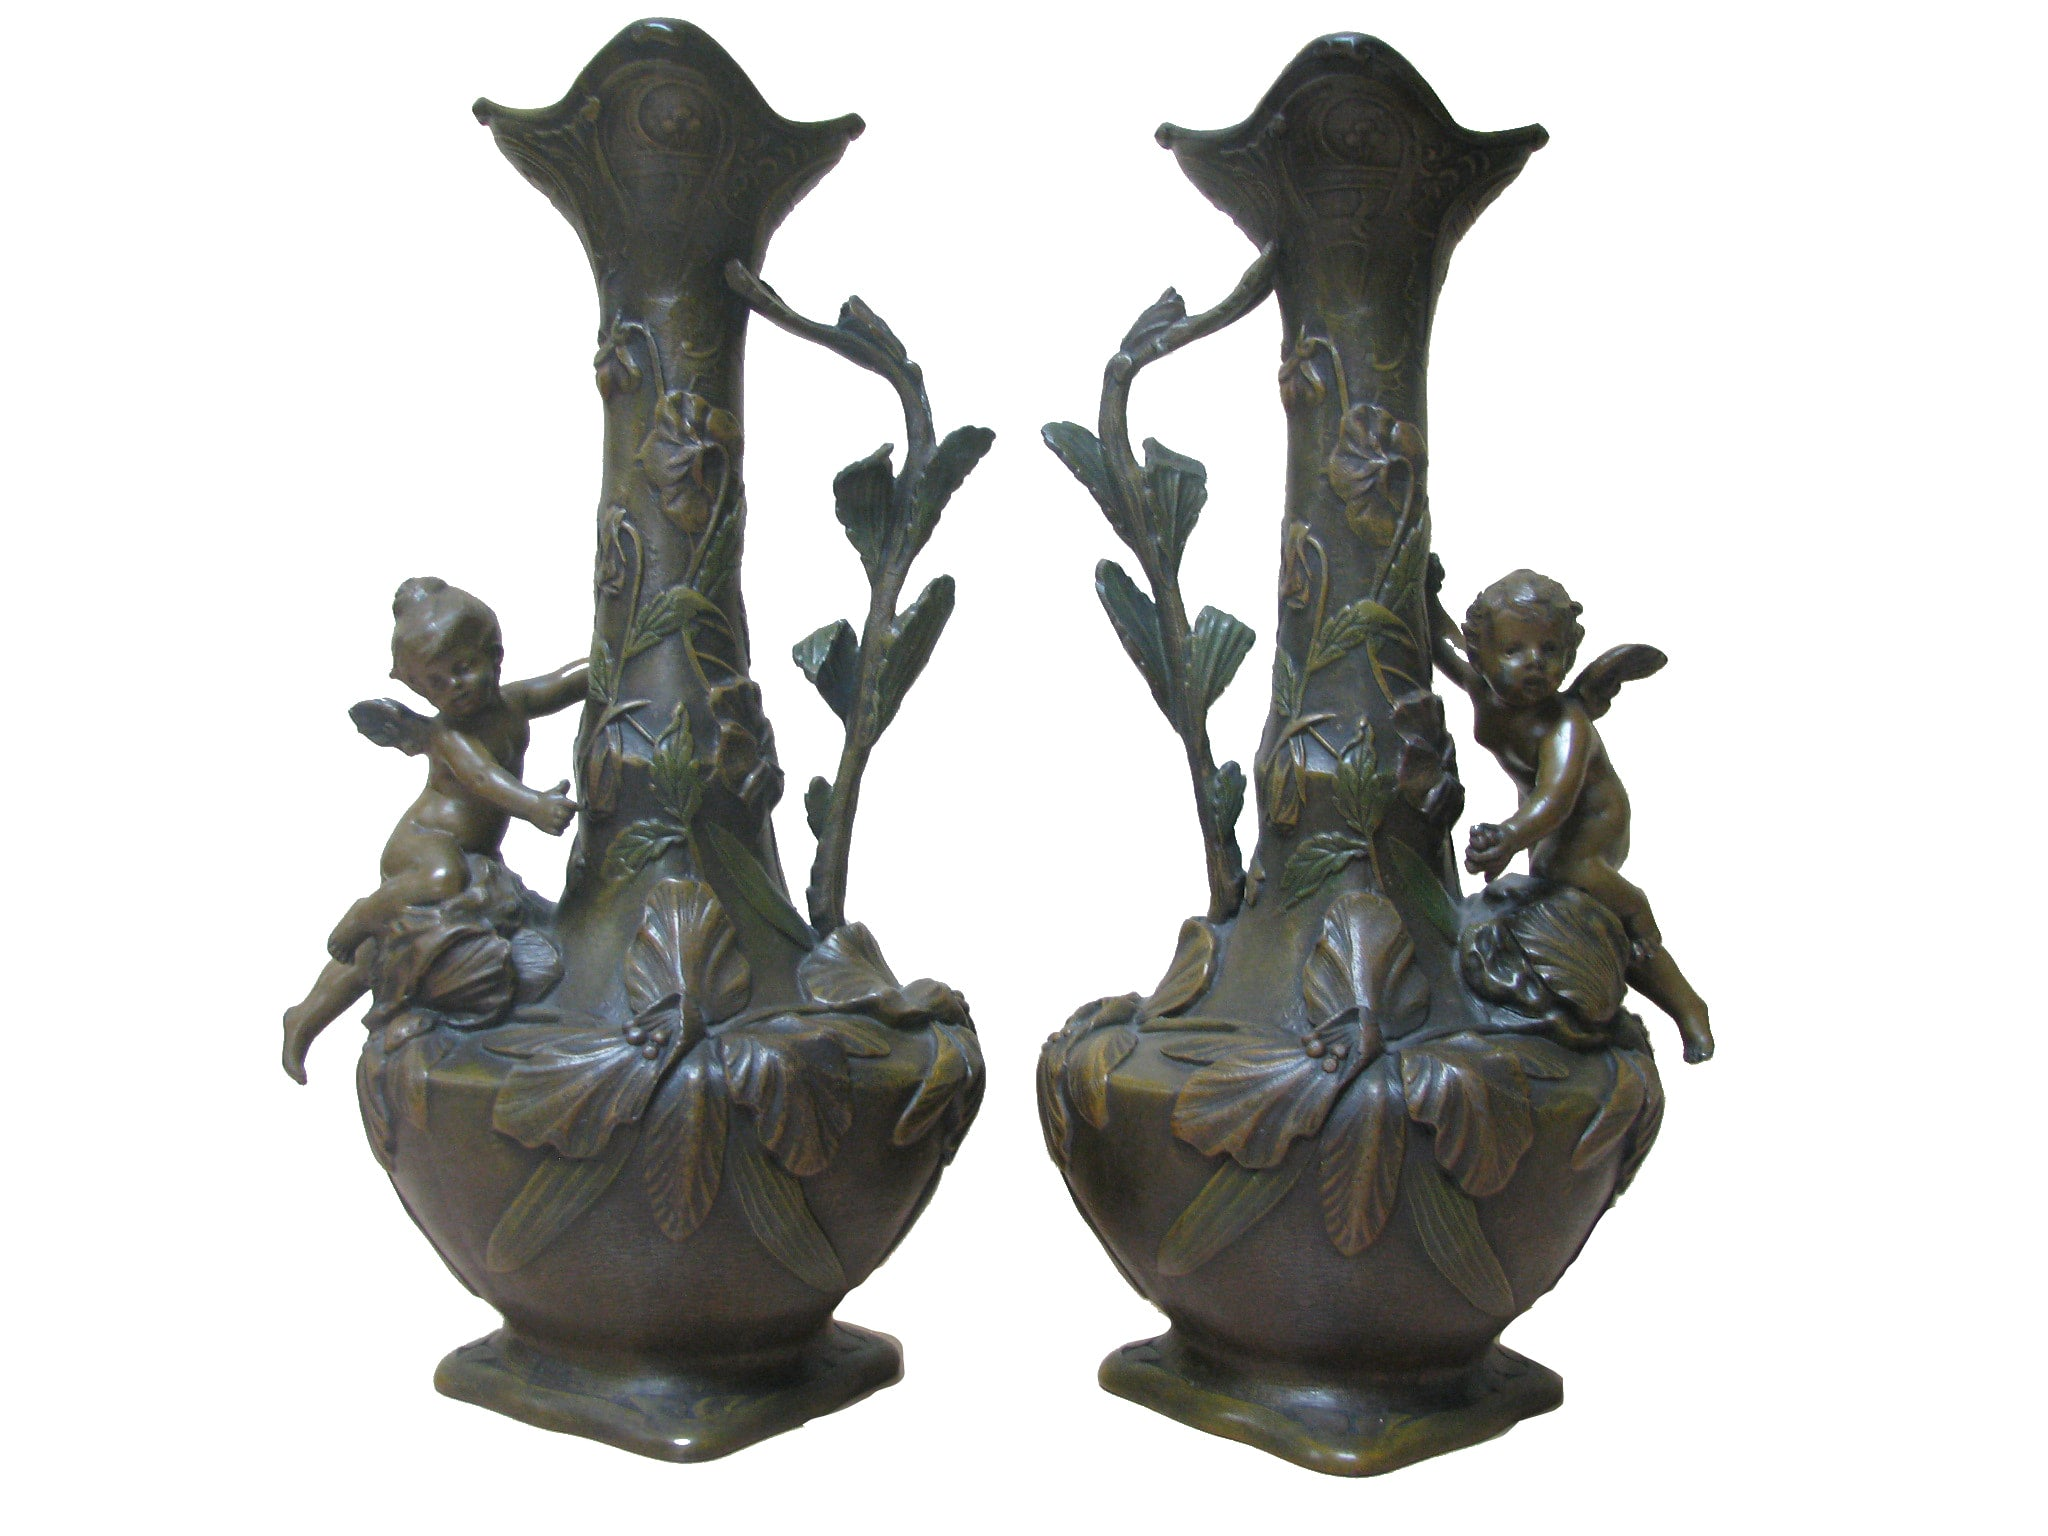 19th Century NeoClassical Water Pitchers By French Sculptor Louis Auguste Leveque